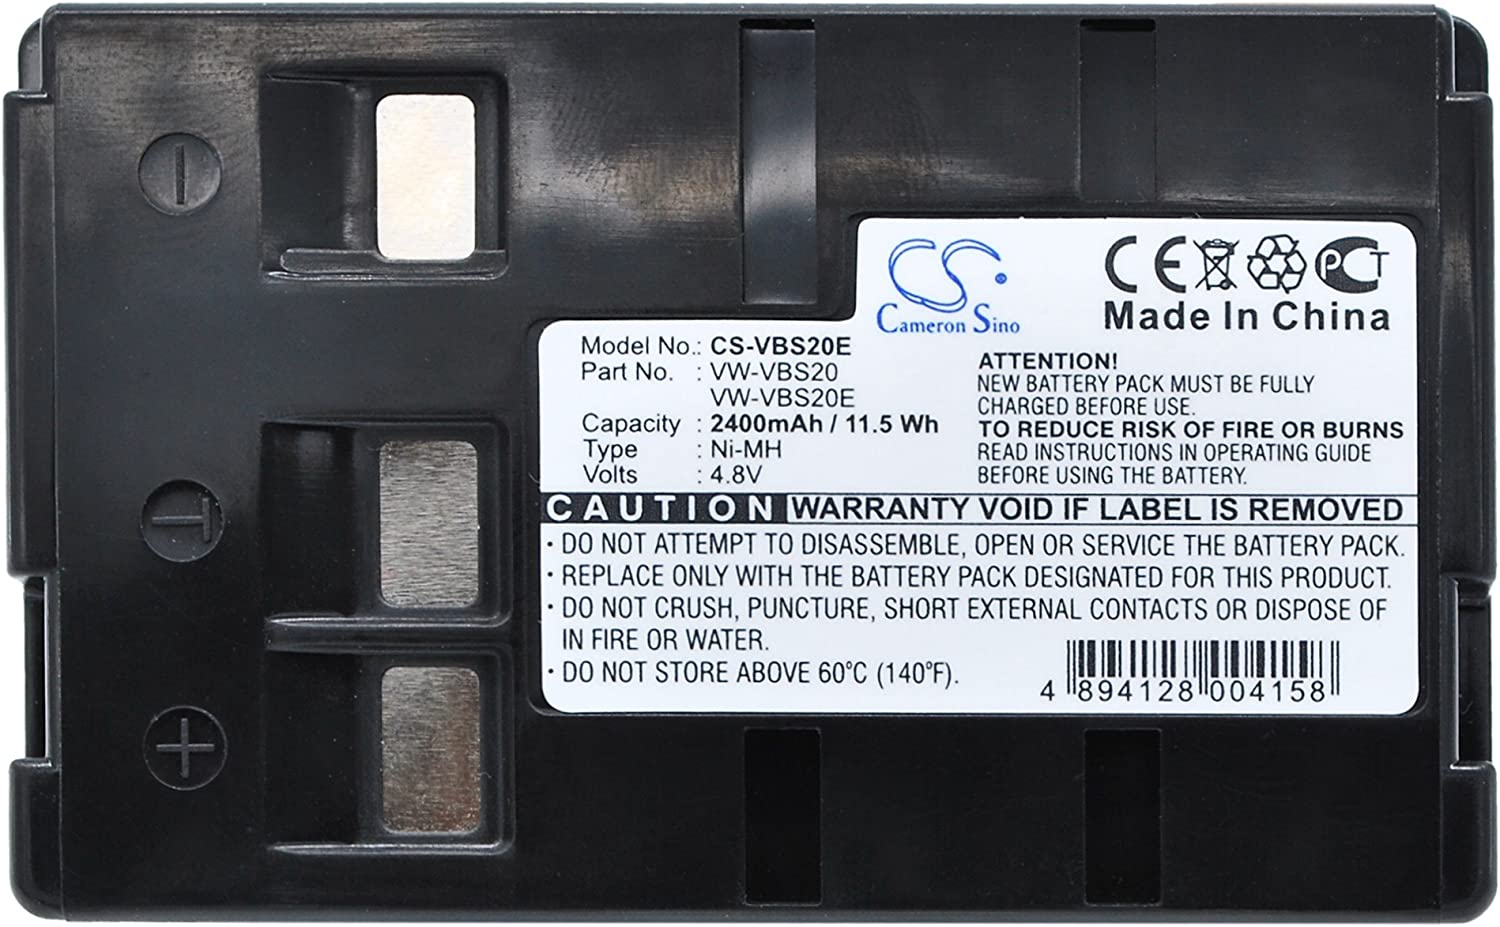 XPS Replacement Battery Compatible with PANASONIC NV-A1 NV-A1EN NV-ALEN NV-CSLEN NV-R00PN and Others